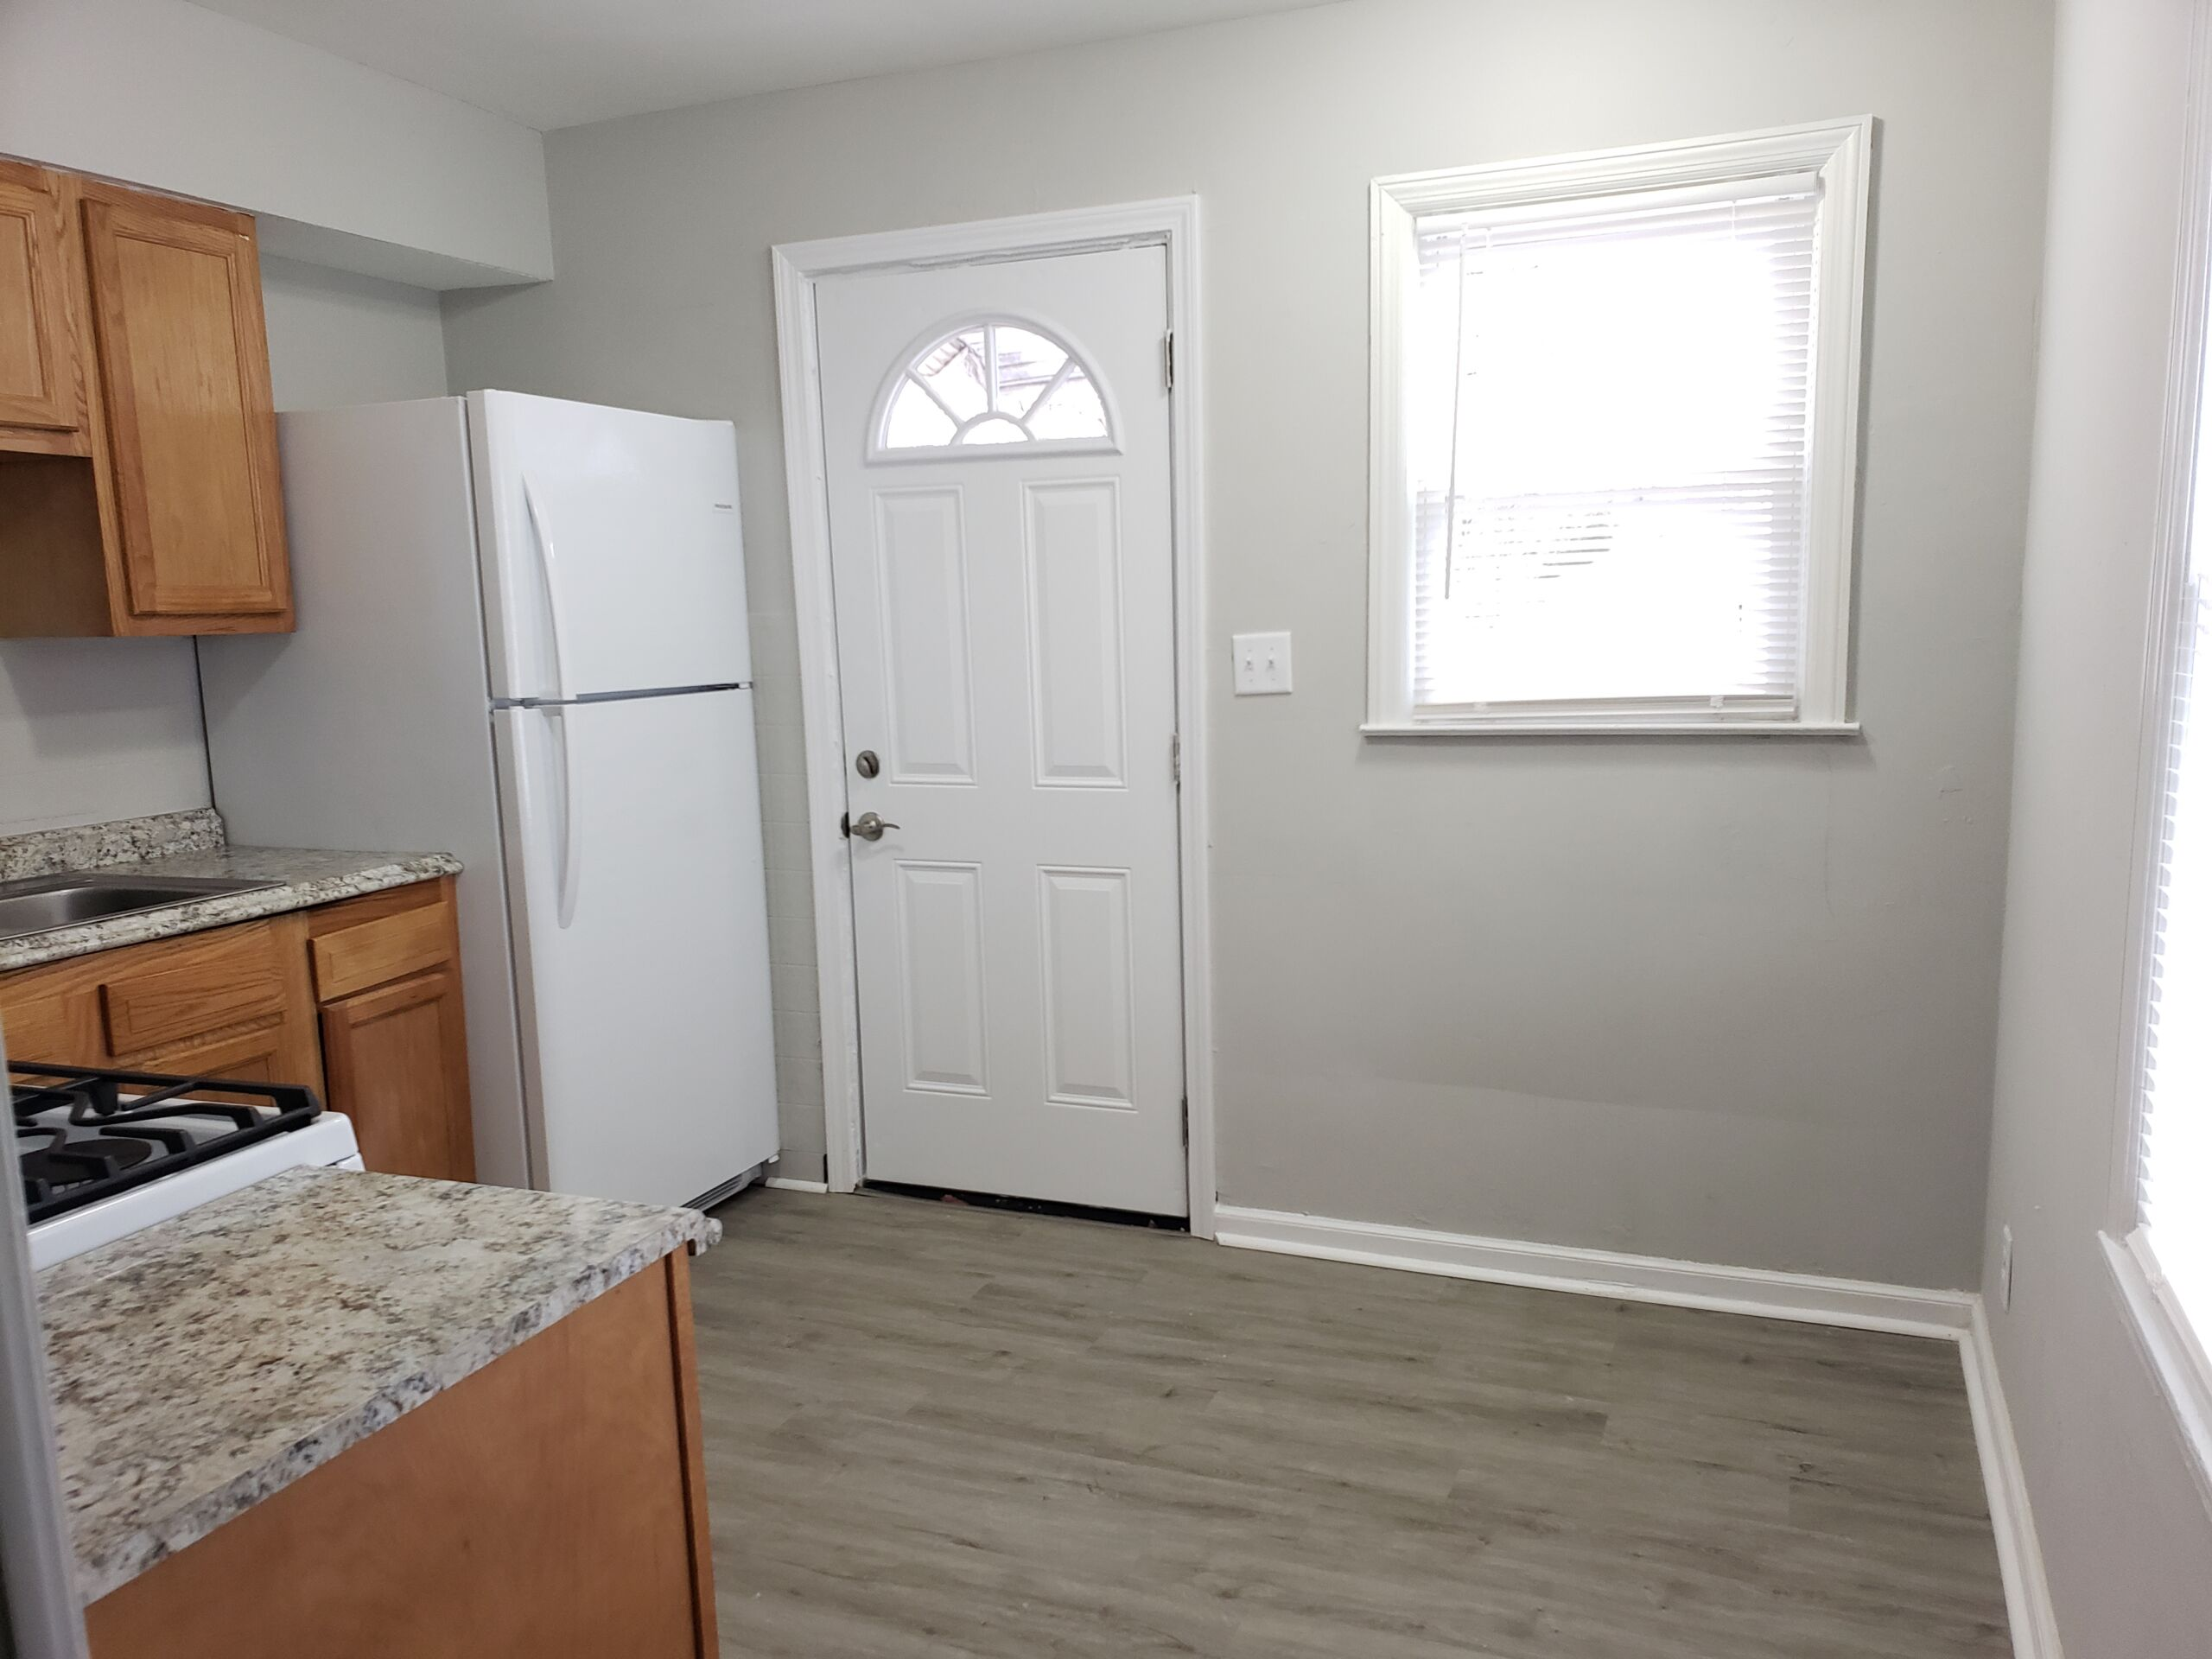 2 BR Ranch with easy access to Downtown & Highways